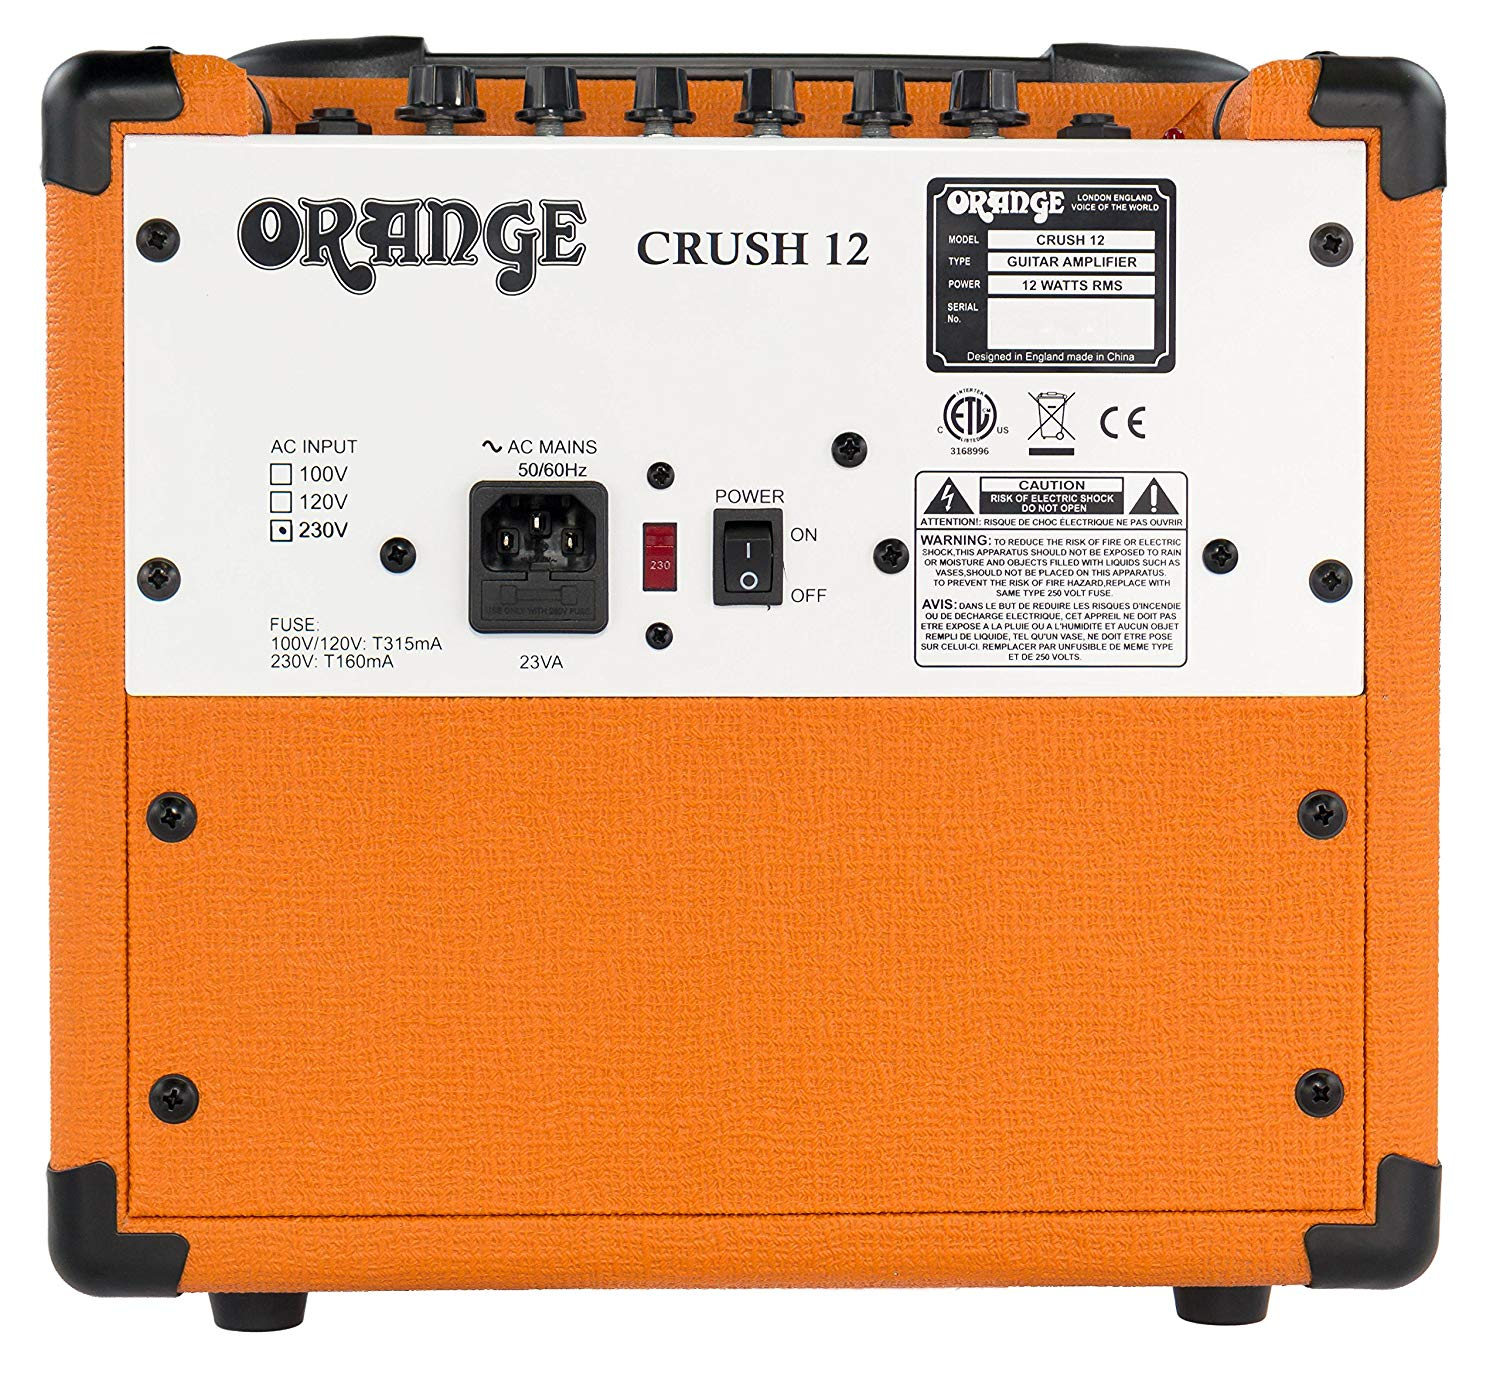 Rear View of The 12 Watt ORANGE Crush Amplifier